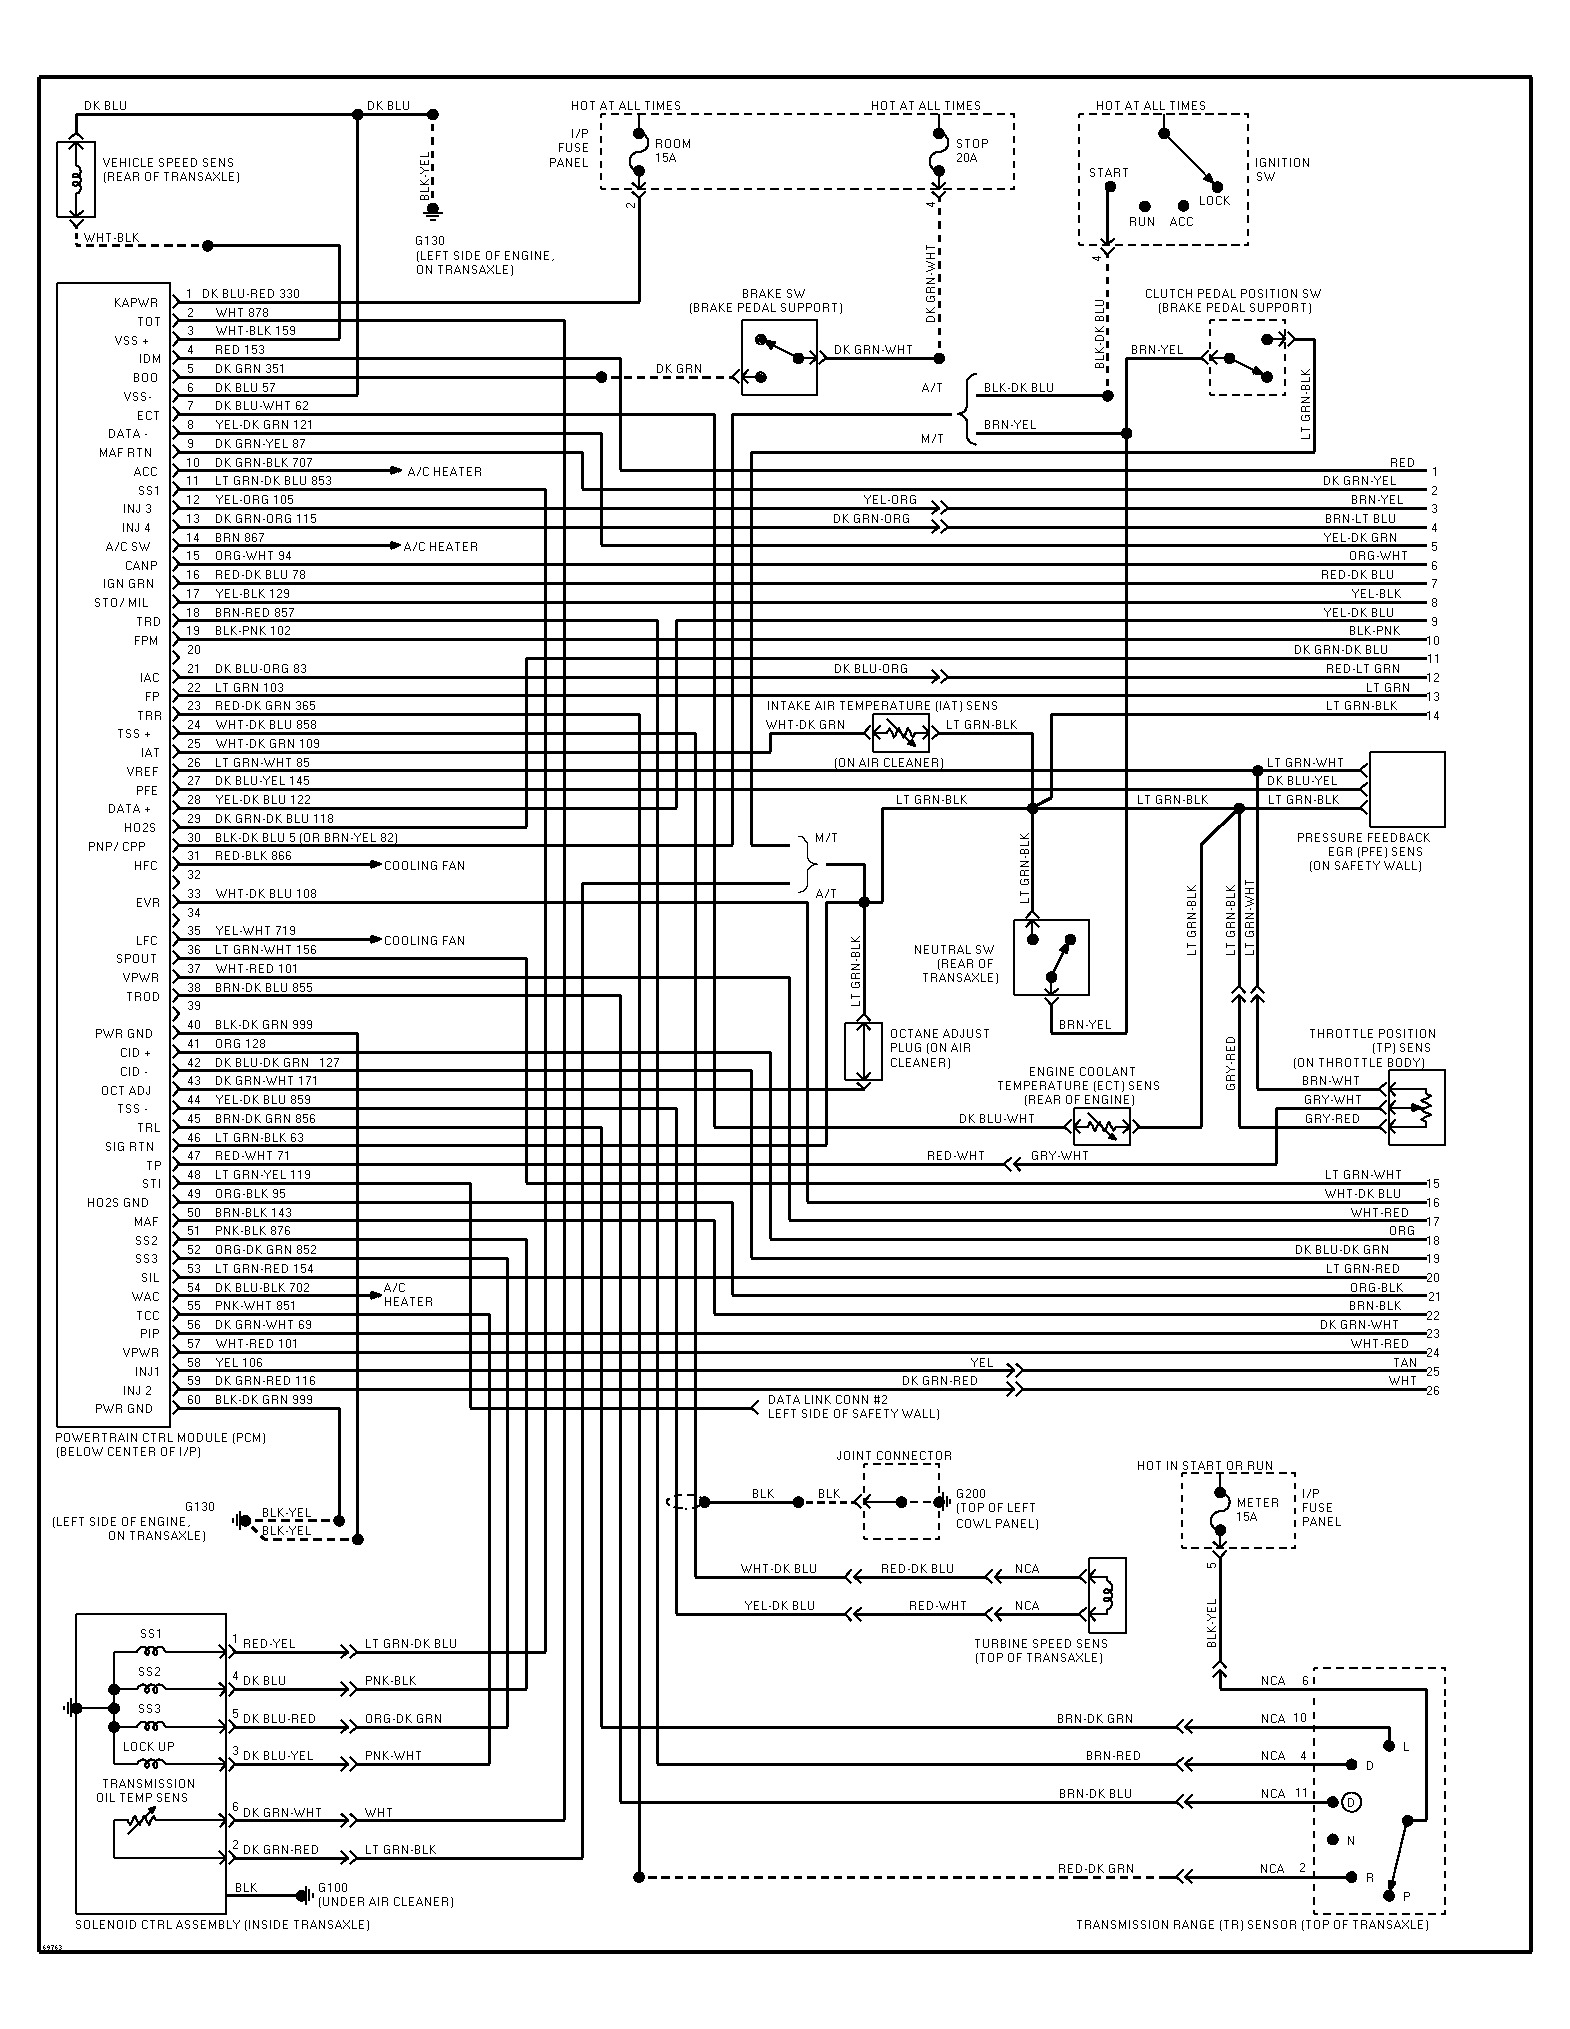 original 1995 ford escort wiring diagram i need to find a color coded ford escort wiring diagram at mr168.co